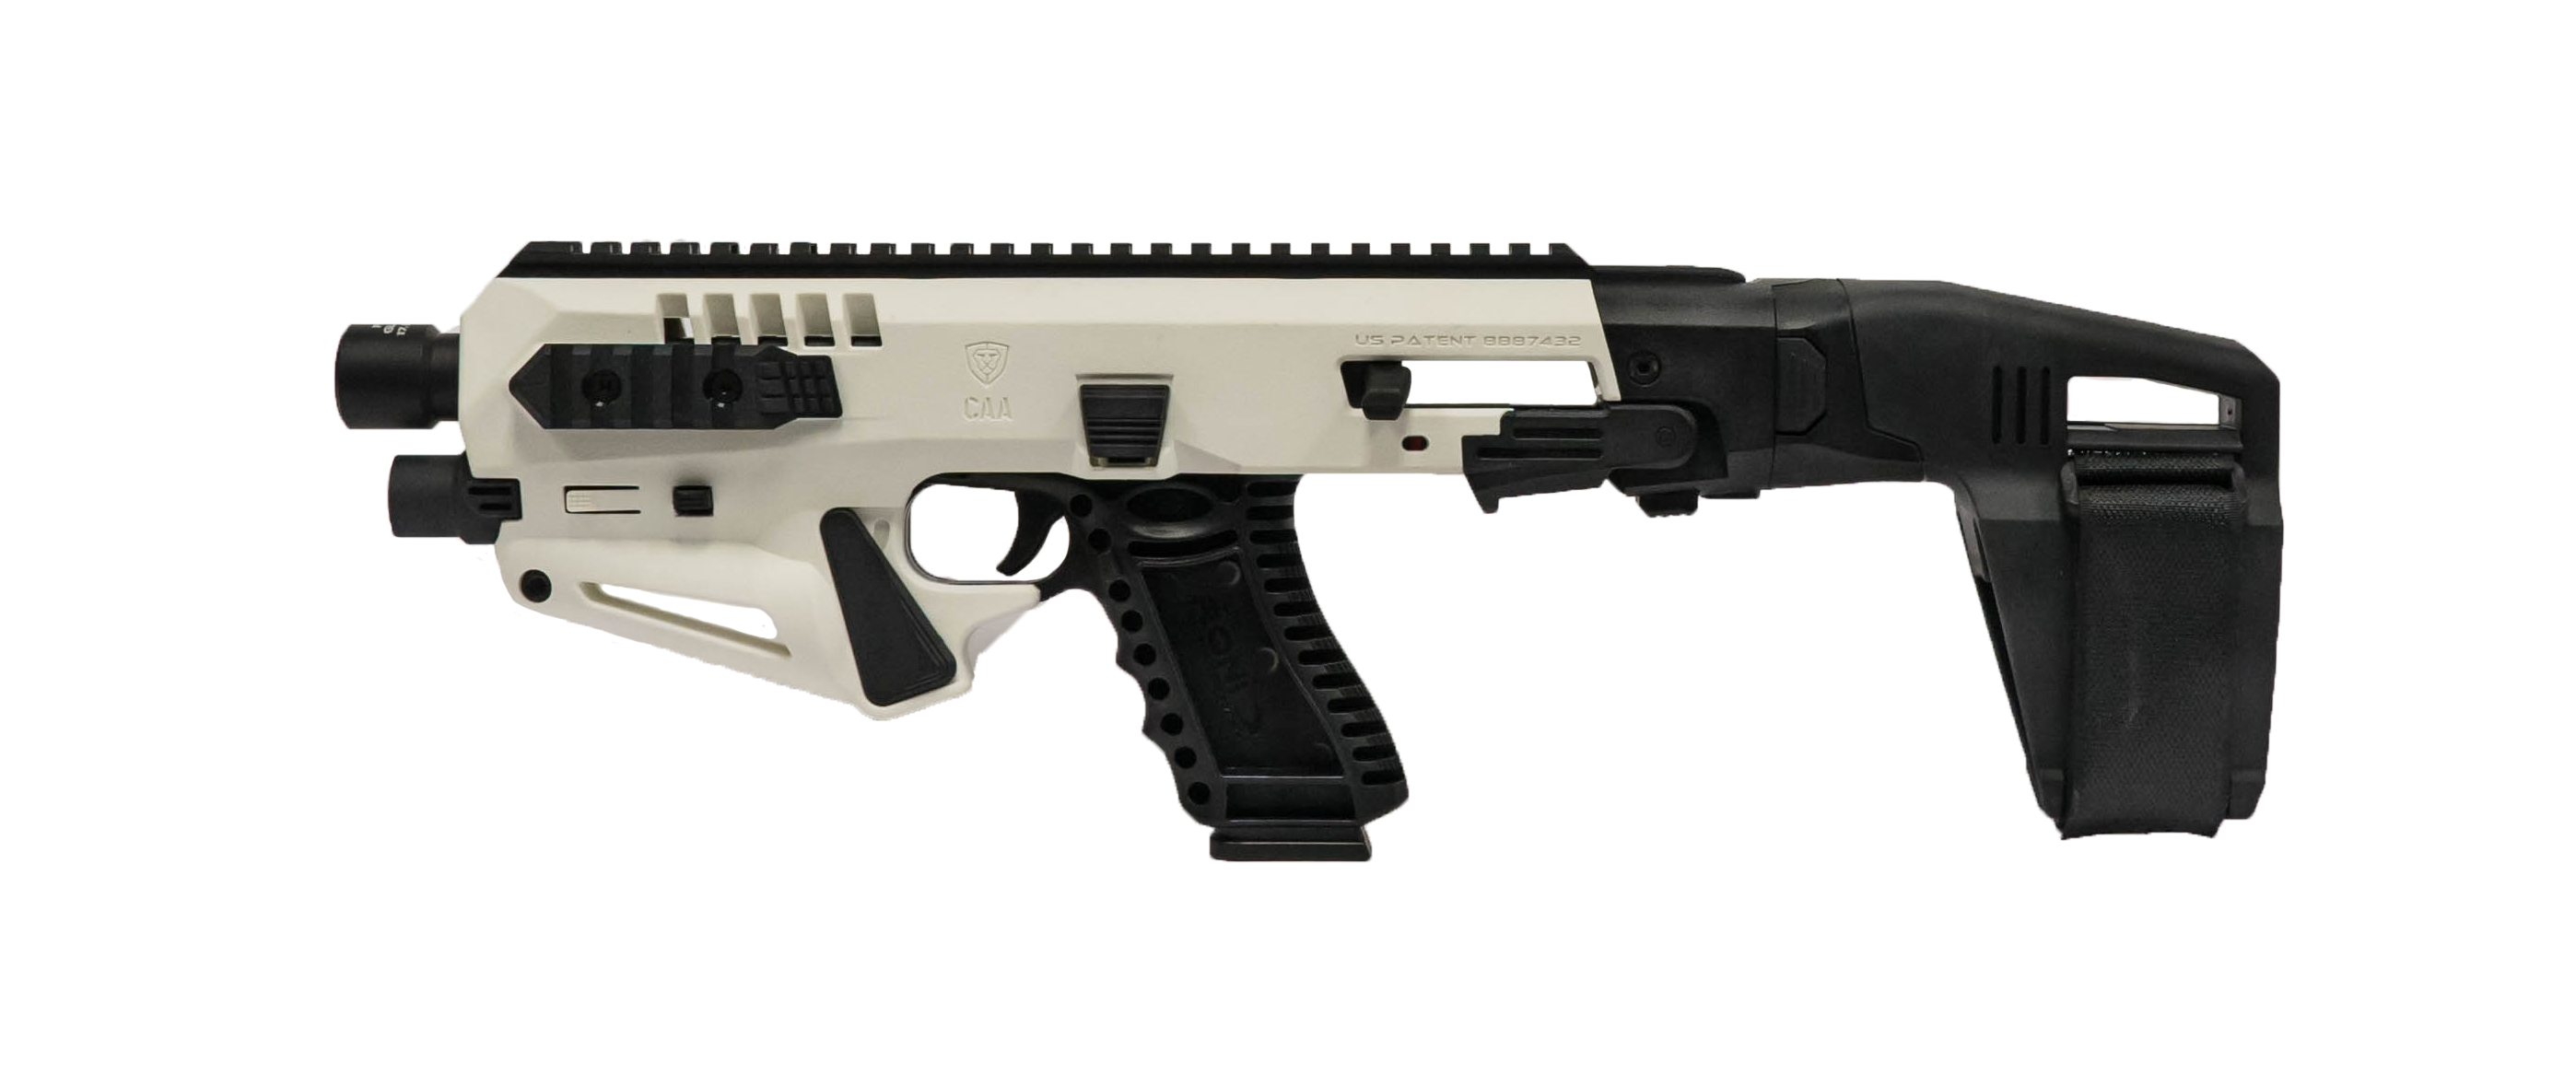 LIMITED EDITION White Micro RONI® Stabilizer Pistol Conversion Model – No NFA Paperwork, No Tax Stamp, or No Wait Period